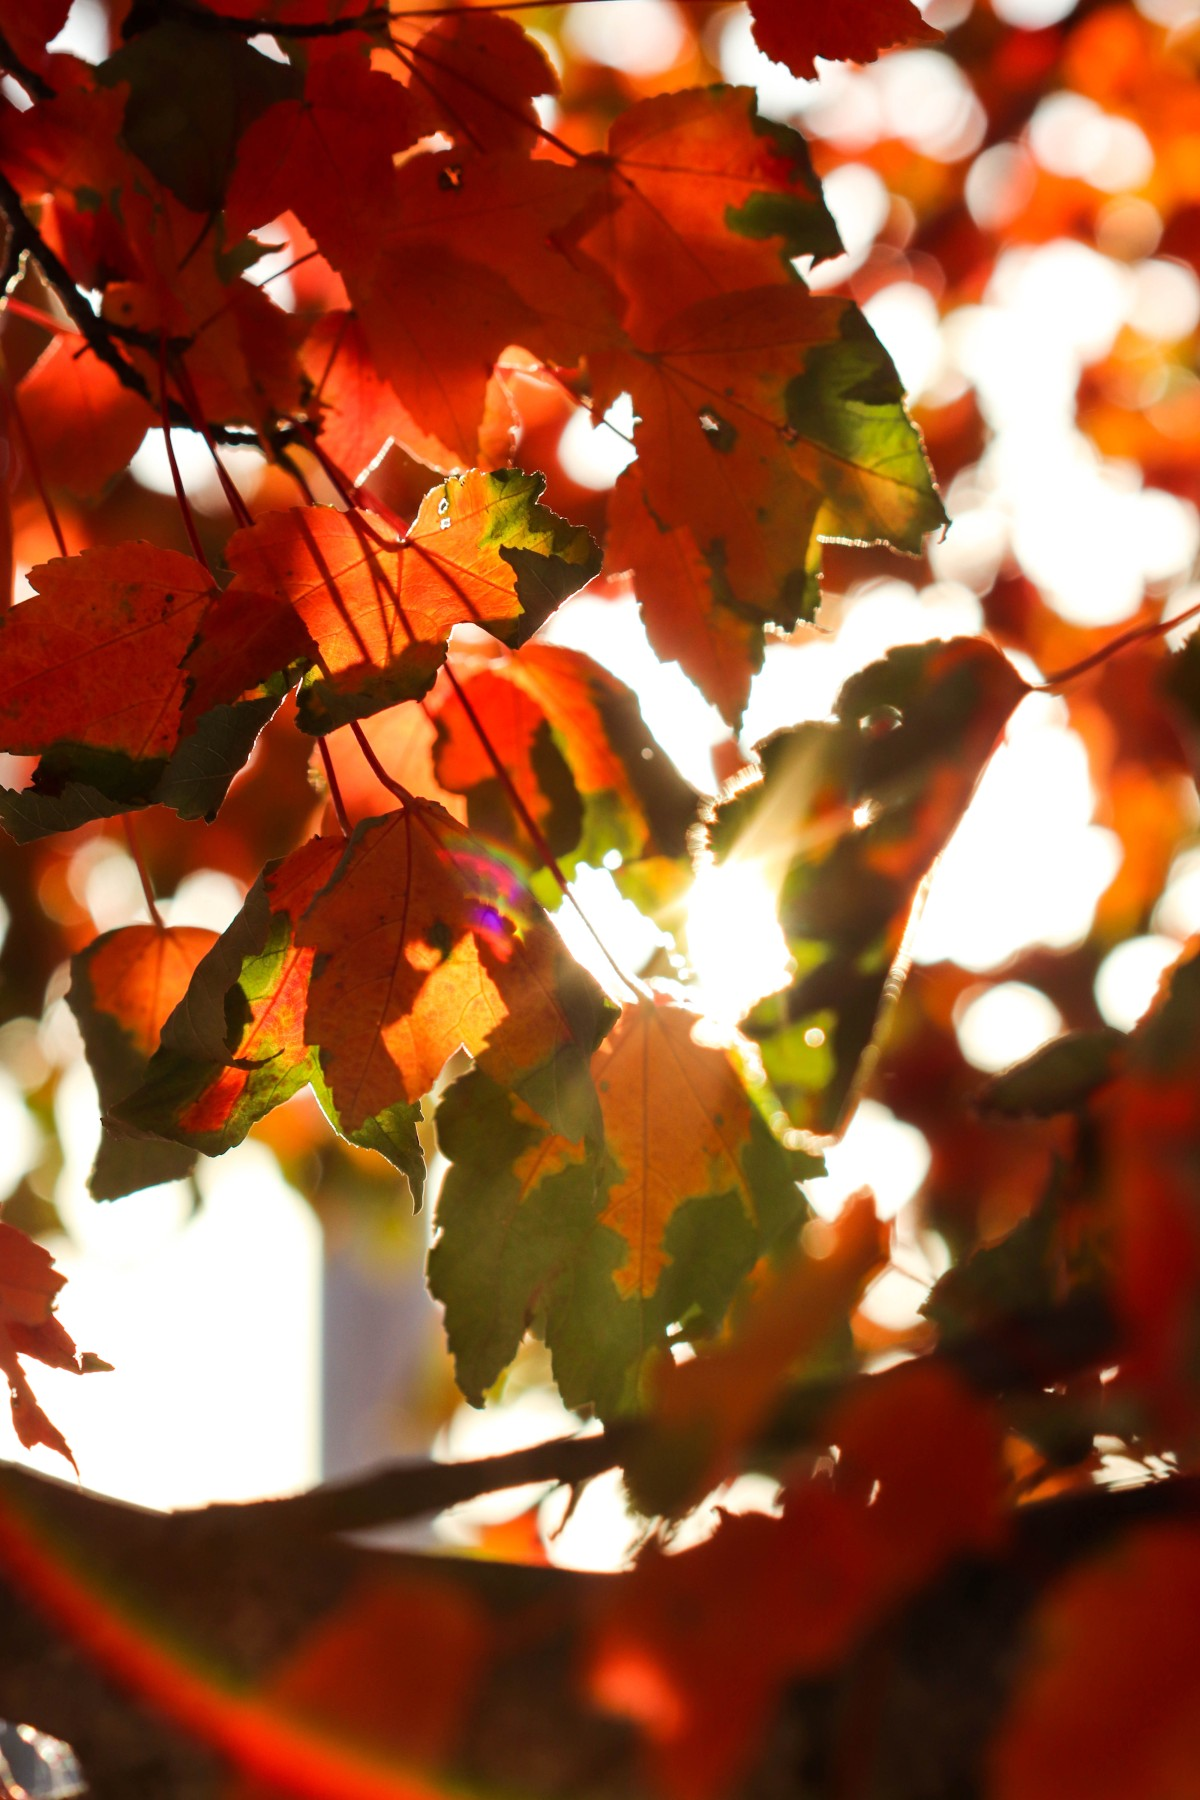 Orange and Green Maple Leaves With Sun Flare Rainbows